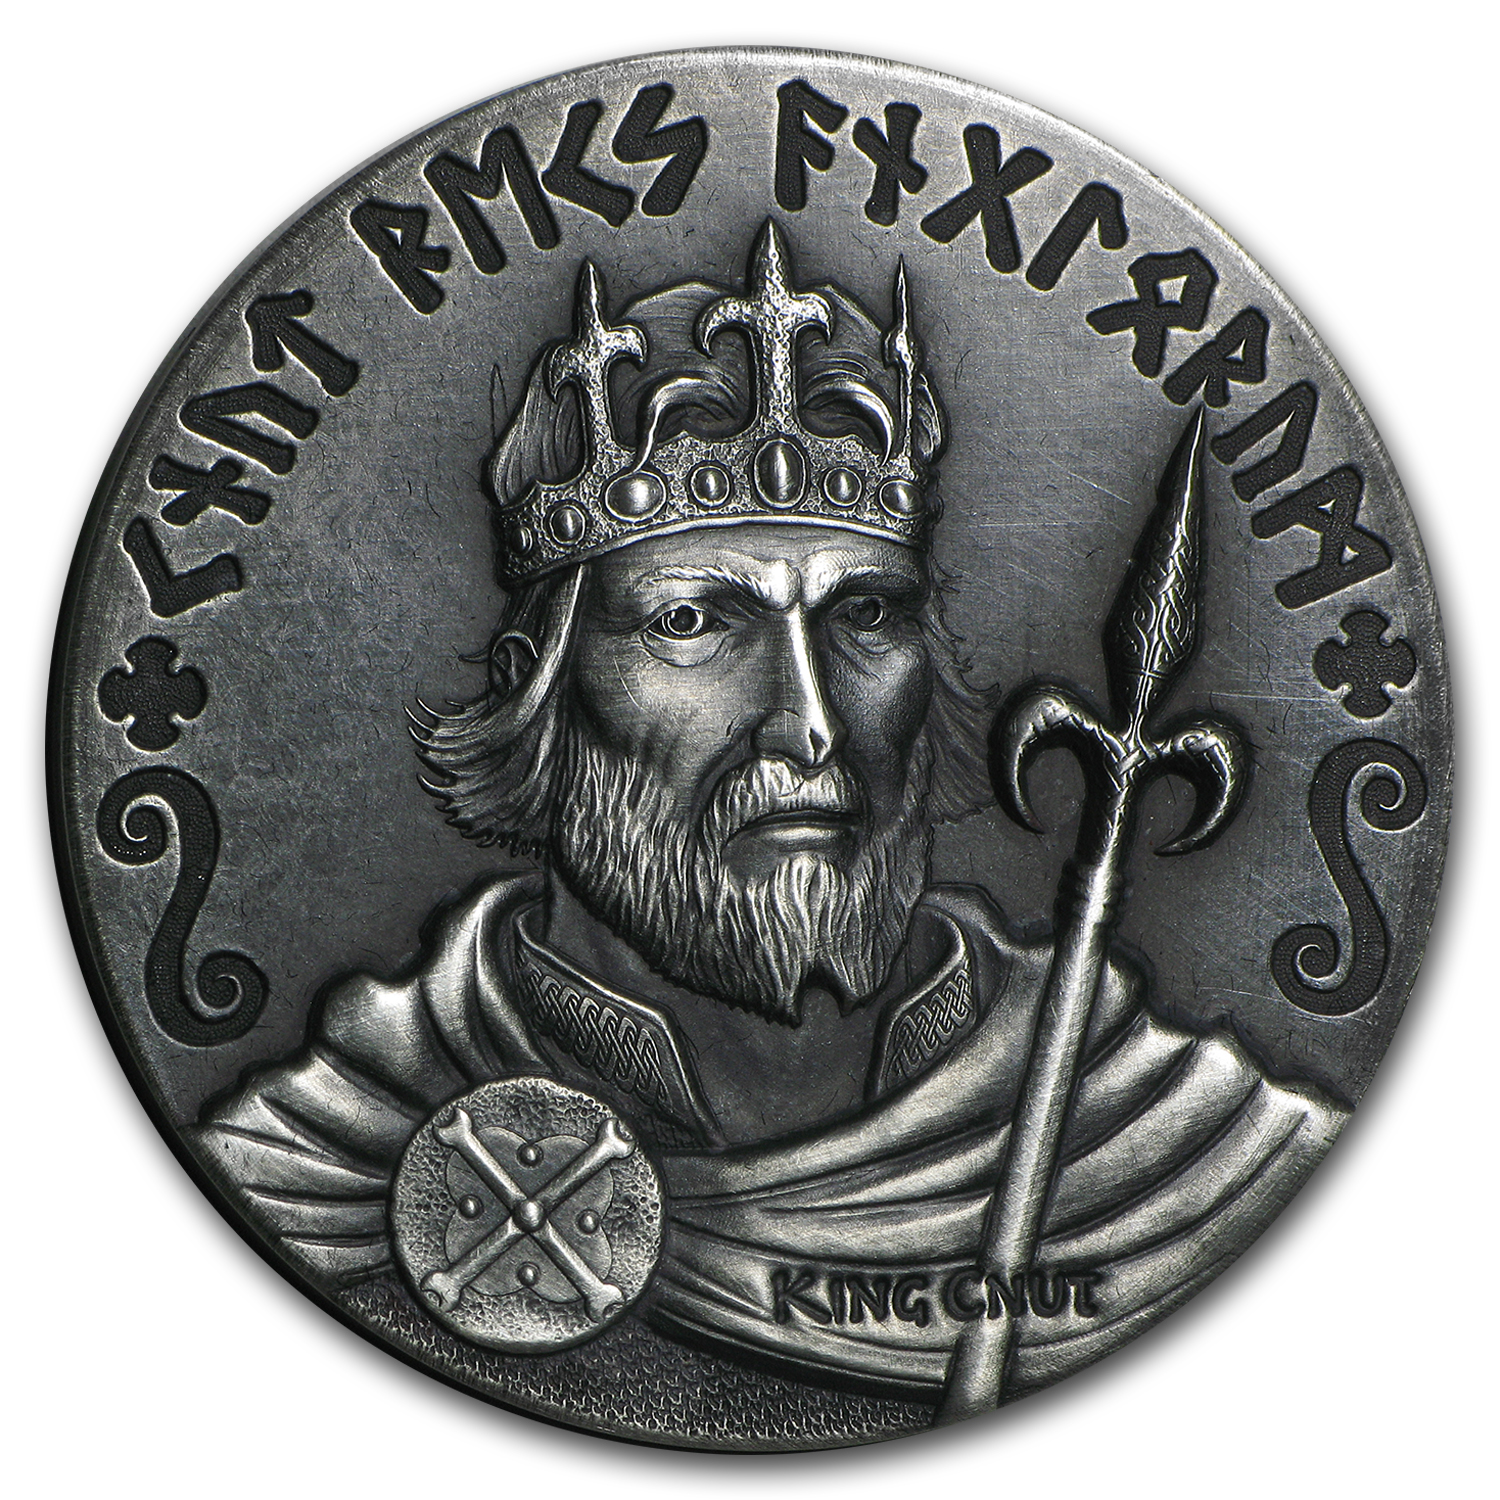 2015 2 oz Silver Coin Viking Series (King Cnut)